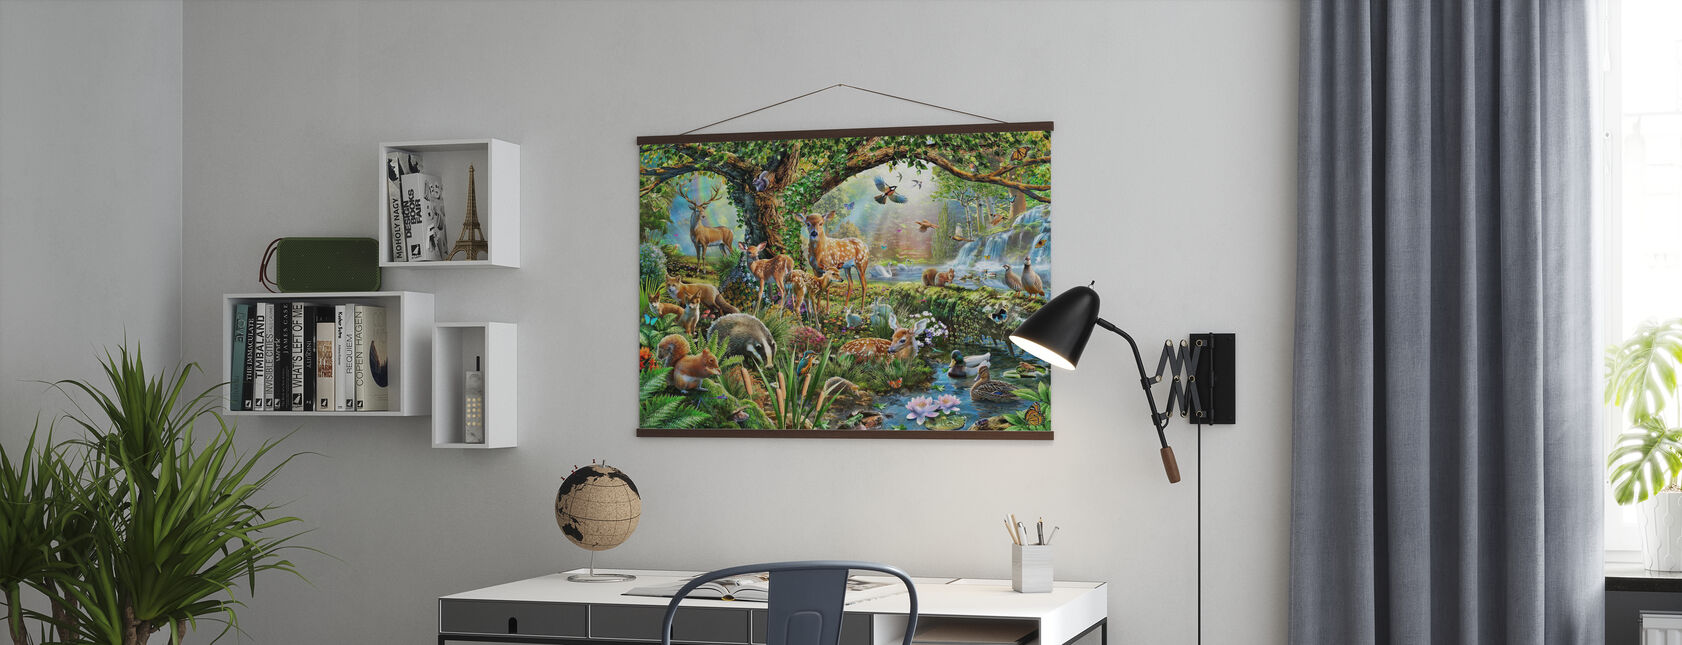 Woodland Creatures - Poster - Office